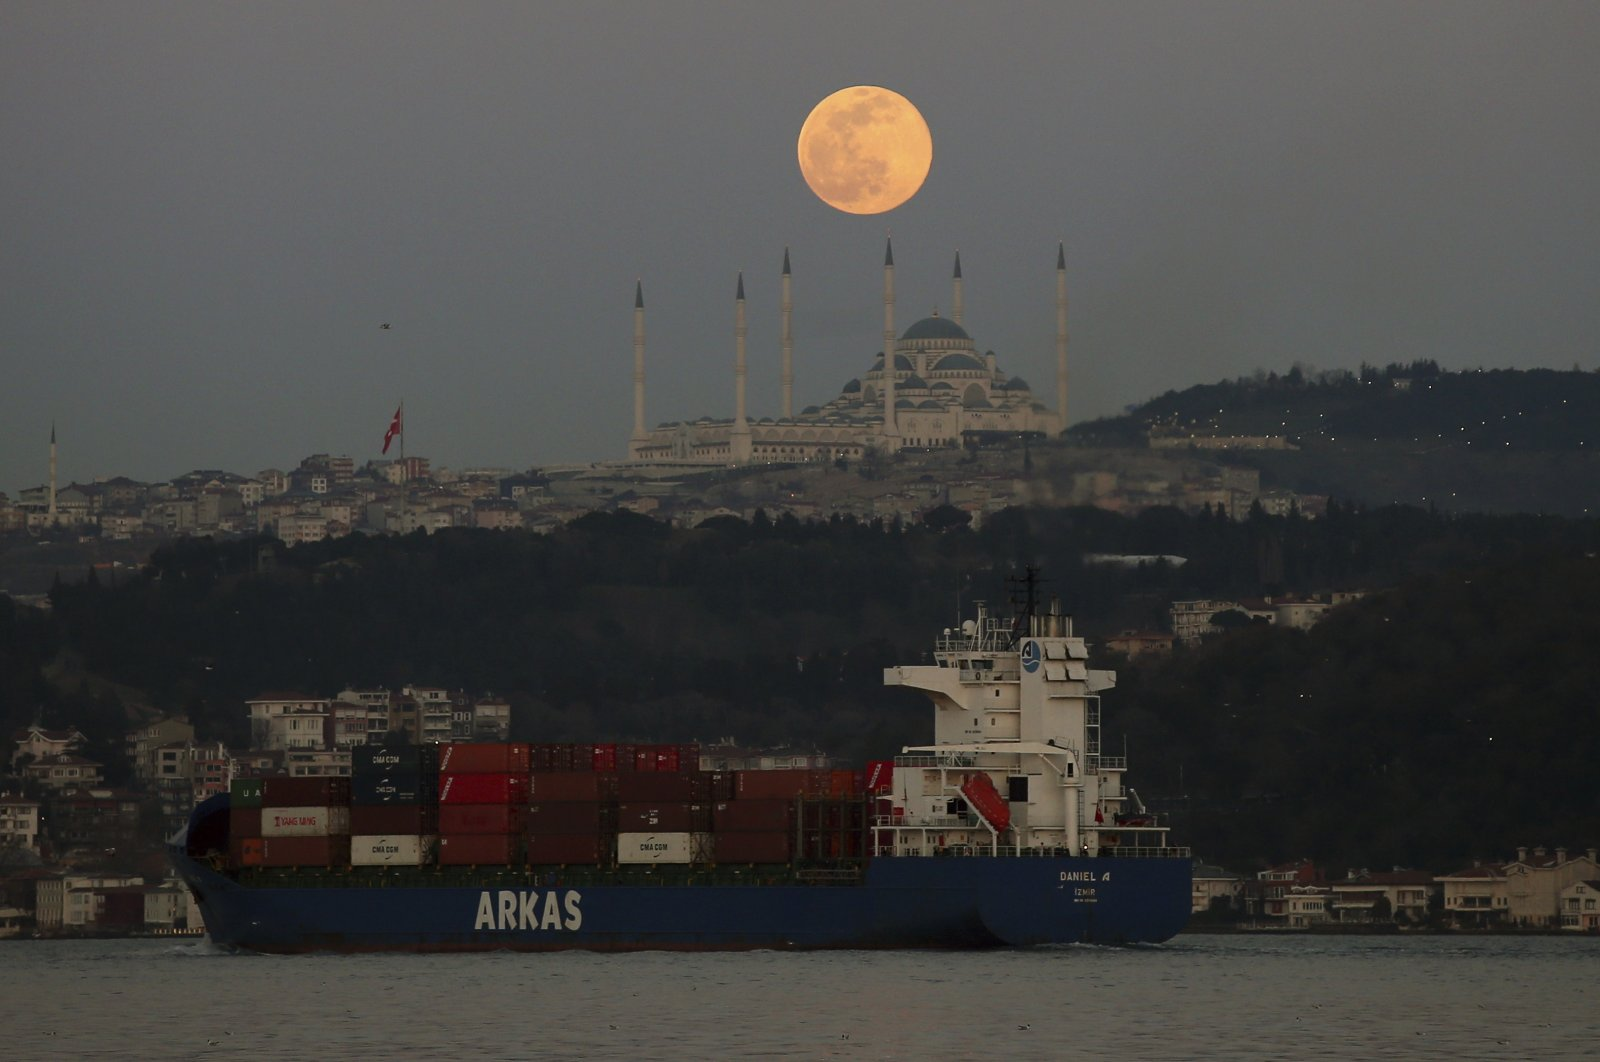 A container ship crosses the Bosporus Strait as the full moon rises over the sky in Istanbul, Turkey, March 28, 2021. (AP Photo)